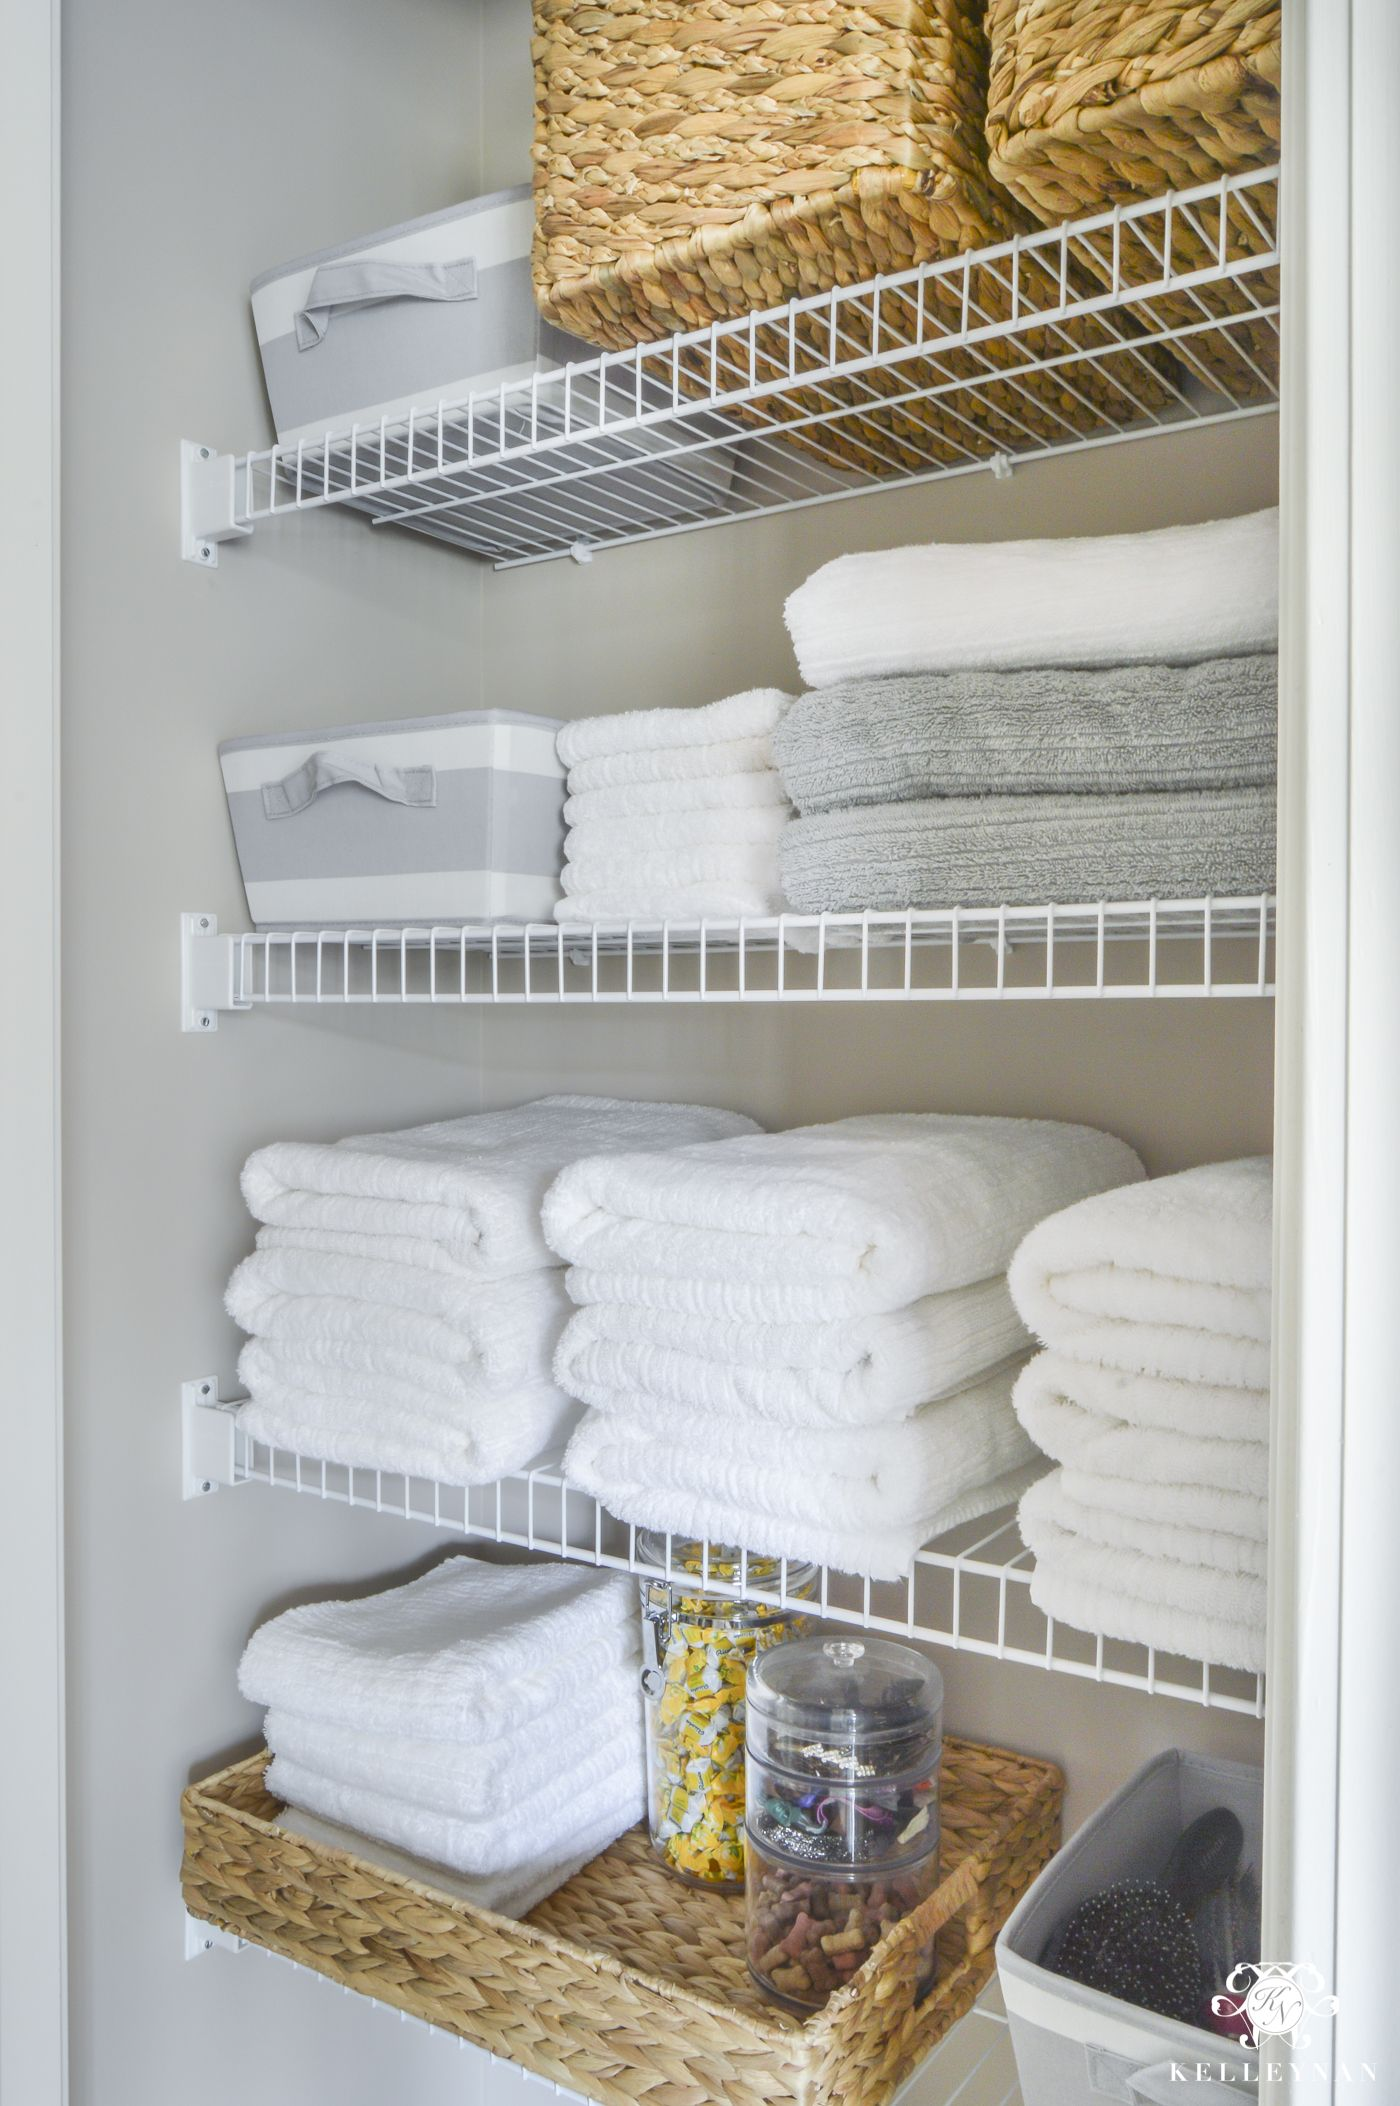 Linen Closet Organizer Systems Organized Bathroom Linen Closet Anyone Can Have Kelley